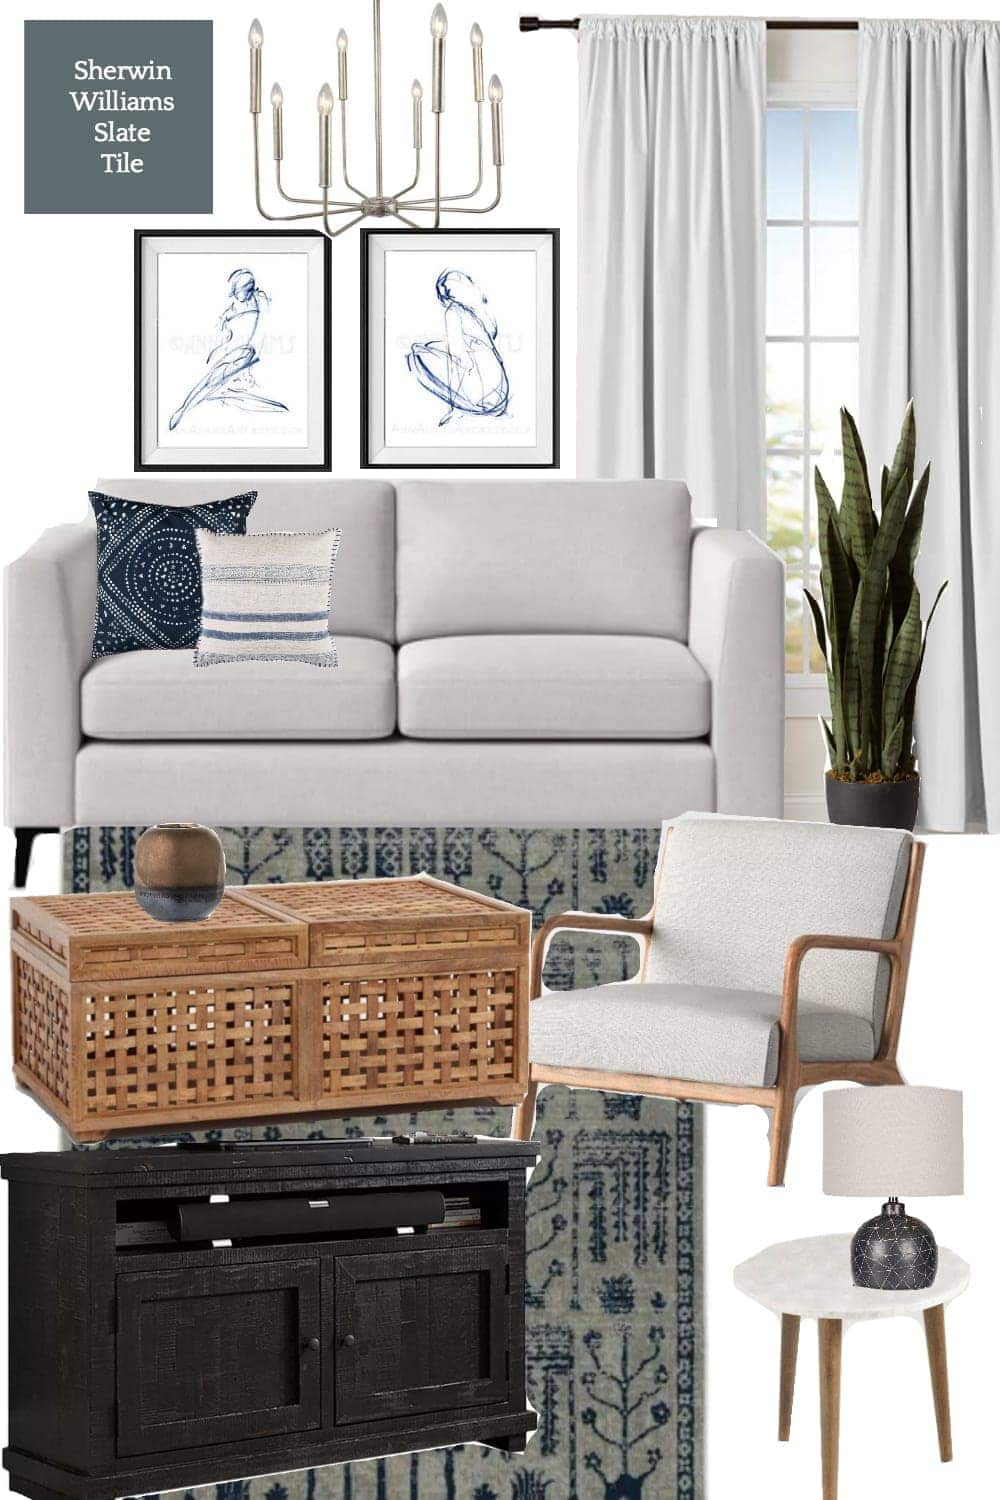 3 Living Room Design Mood Boards Under $2,000 | Modern Minimalist